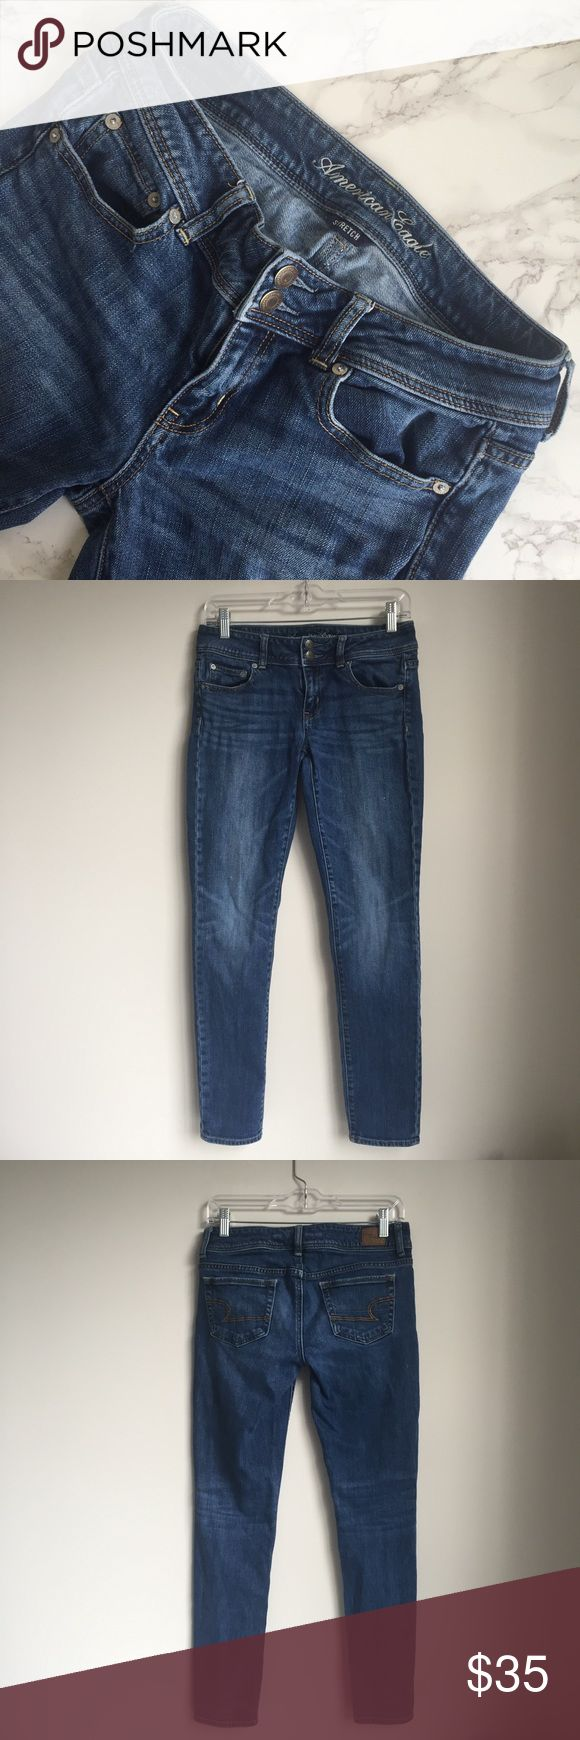 AMERICAN EAGLE Skinny Jeans American Eagle Outfitters skinny jeans. Good condition. Inseam is about 29 inches. 99% cotton, 1% spandex. American Eagle Outfitters Jeans Skinny